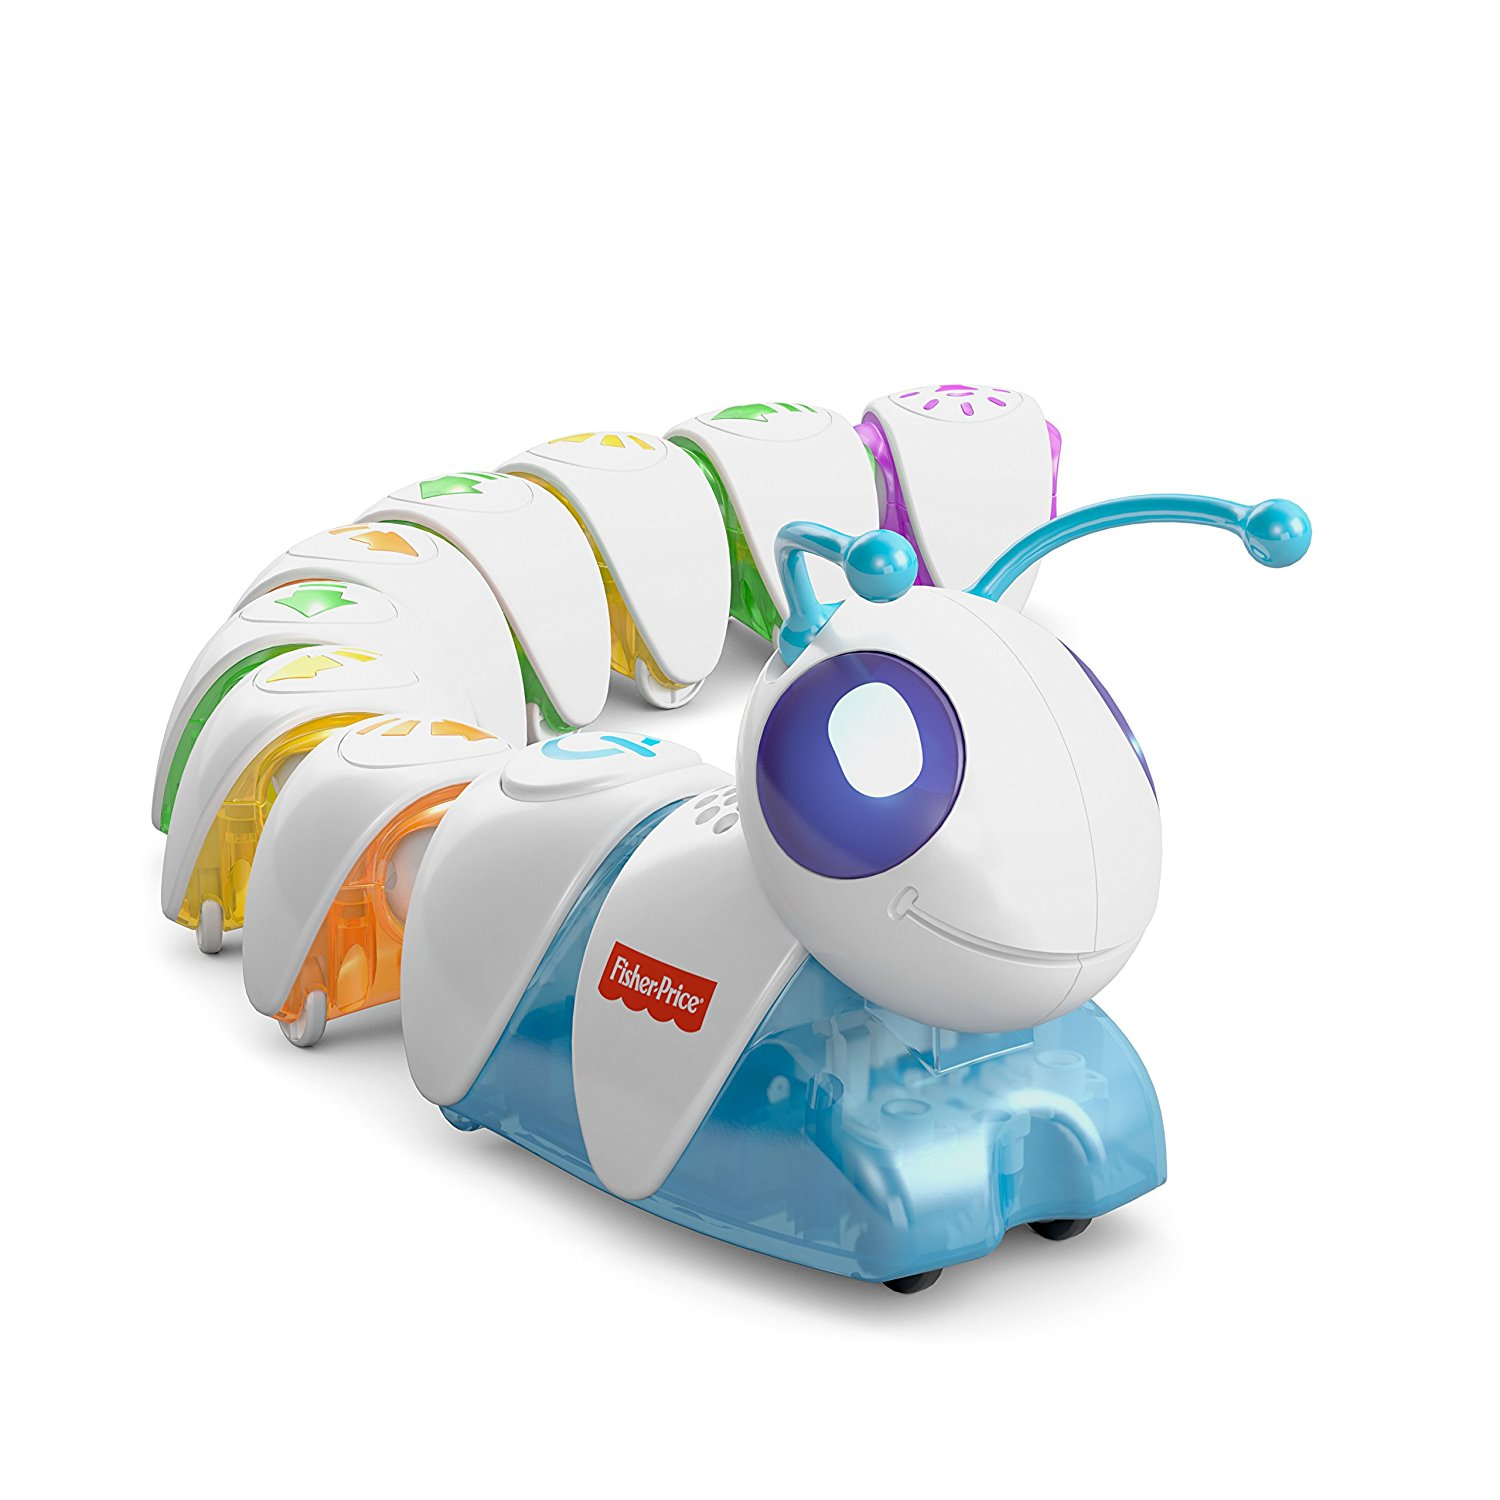 Fisher Price Think & Learn Code-a-pillar by Fisher-Price